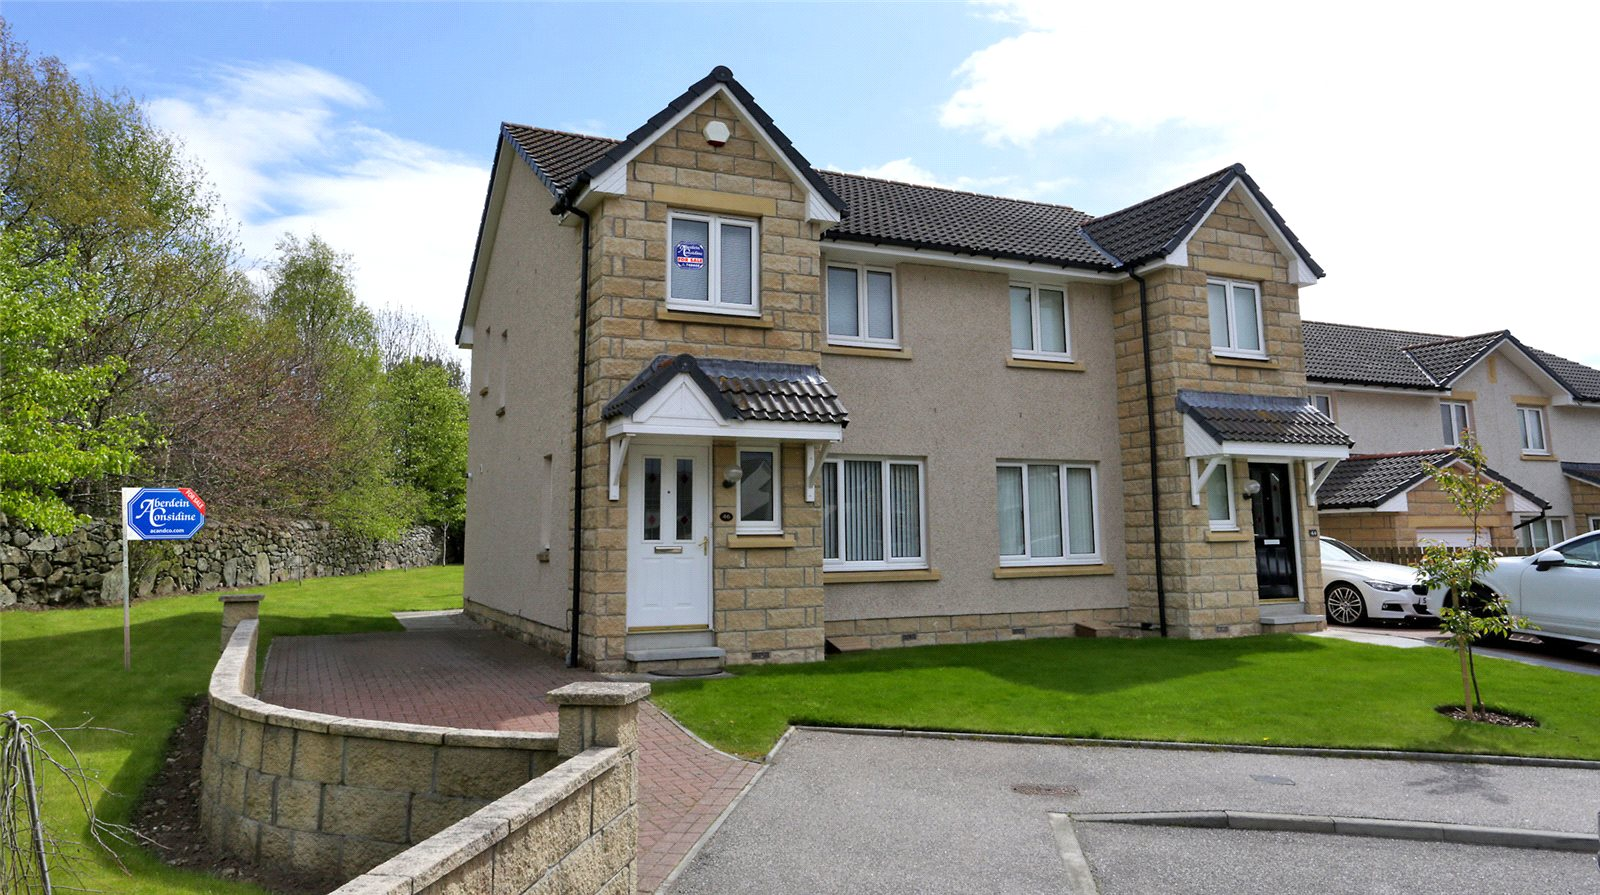 46 Carnie Drive, Westhill - £250,000